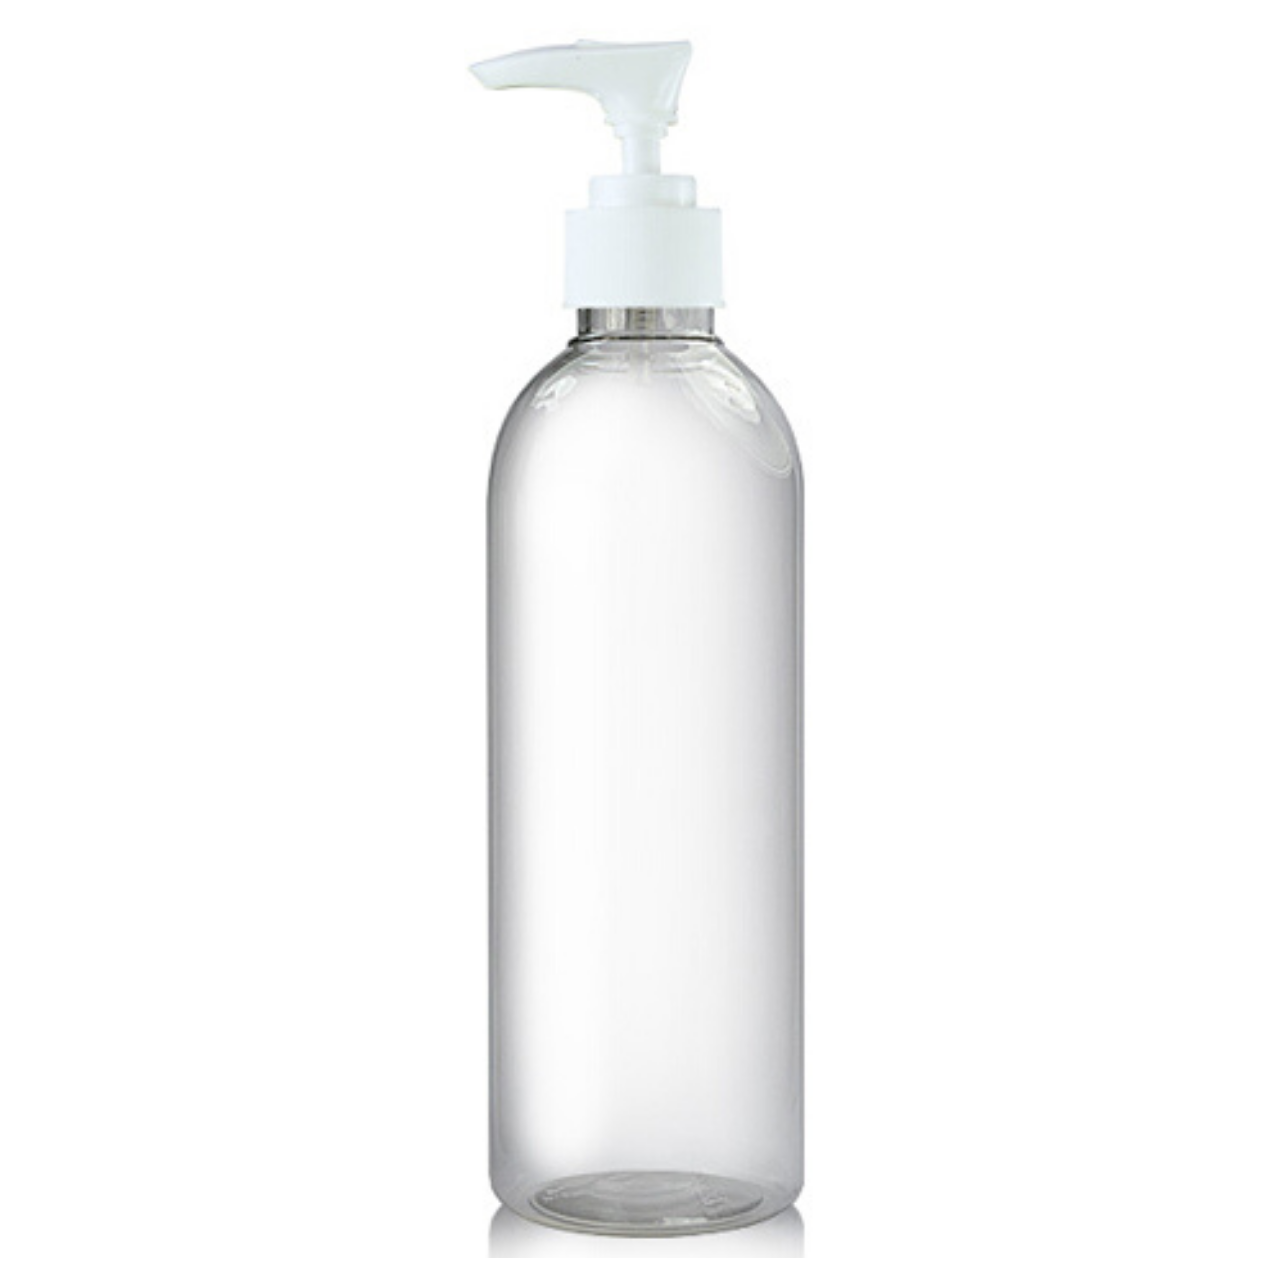 500ml Empty Bottle and Pump Top by  My Wholesale Warehouse